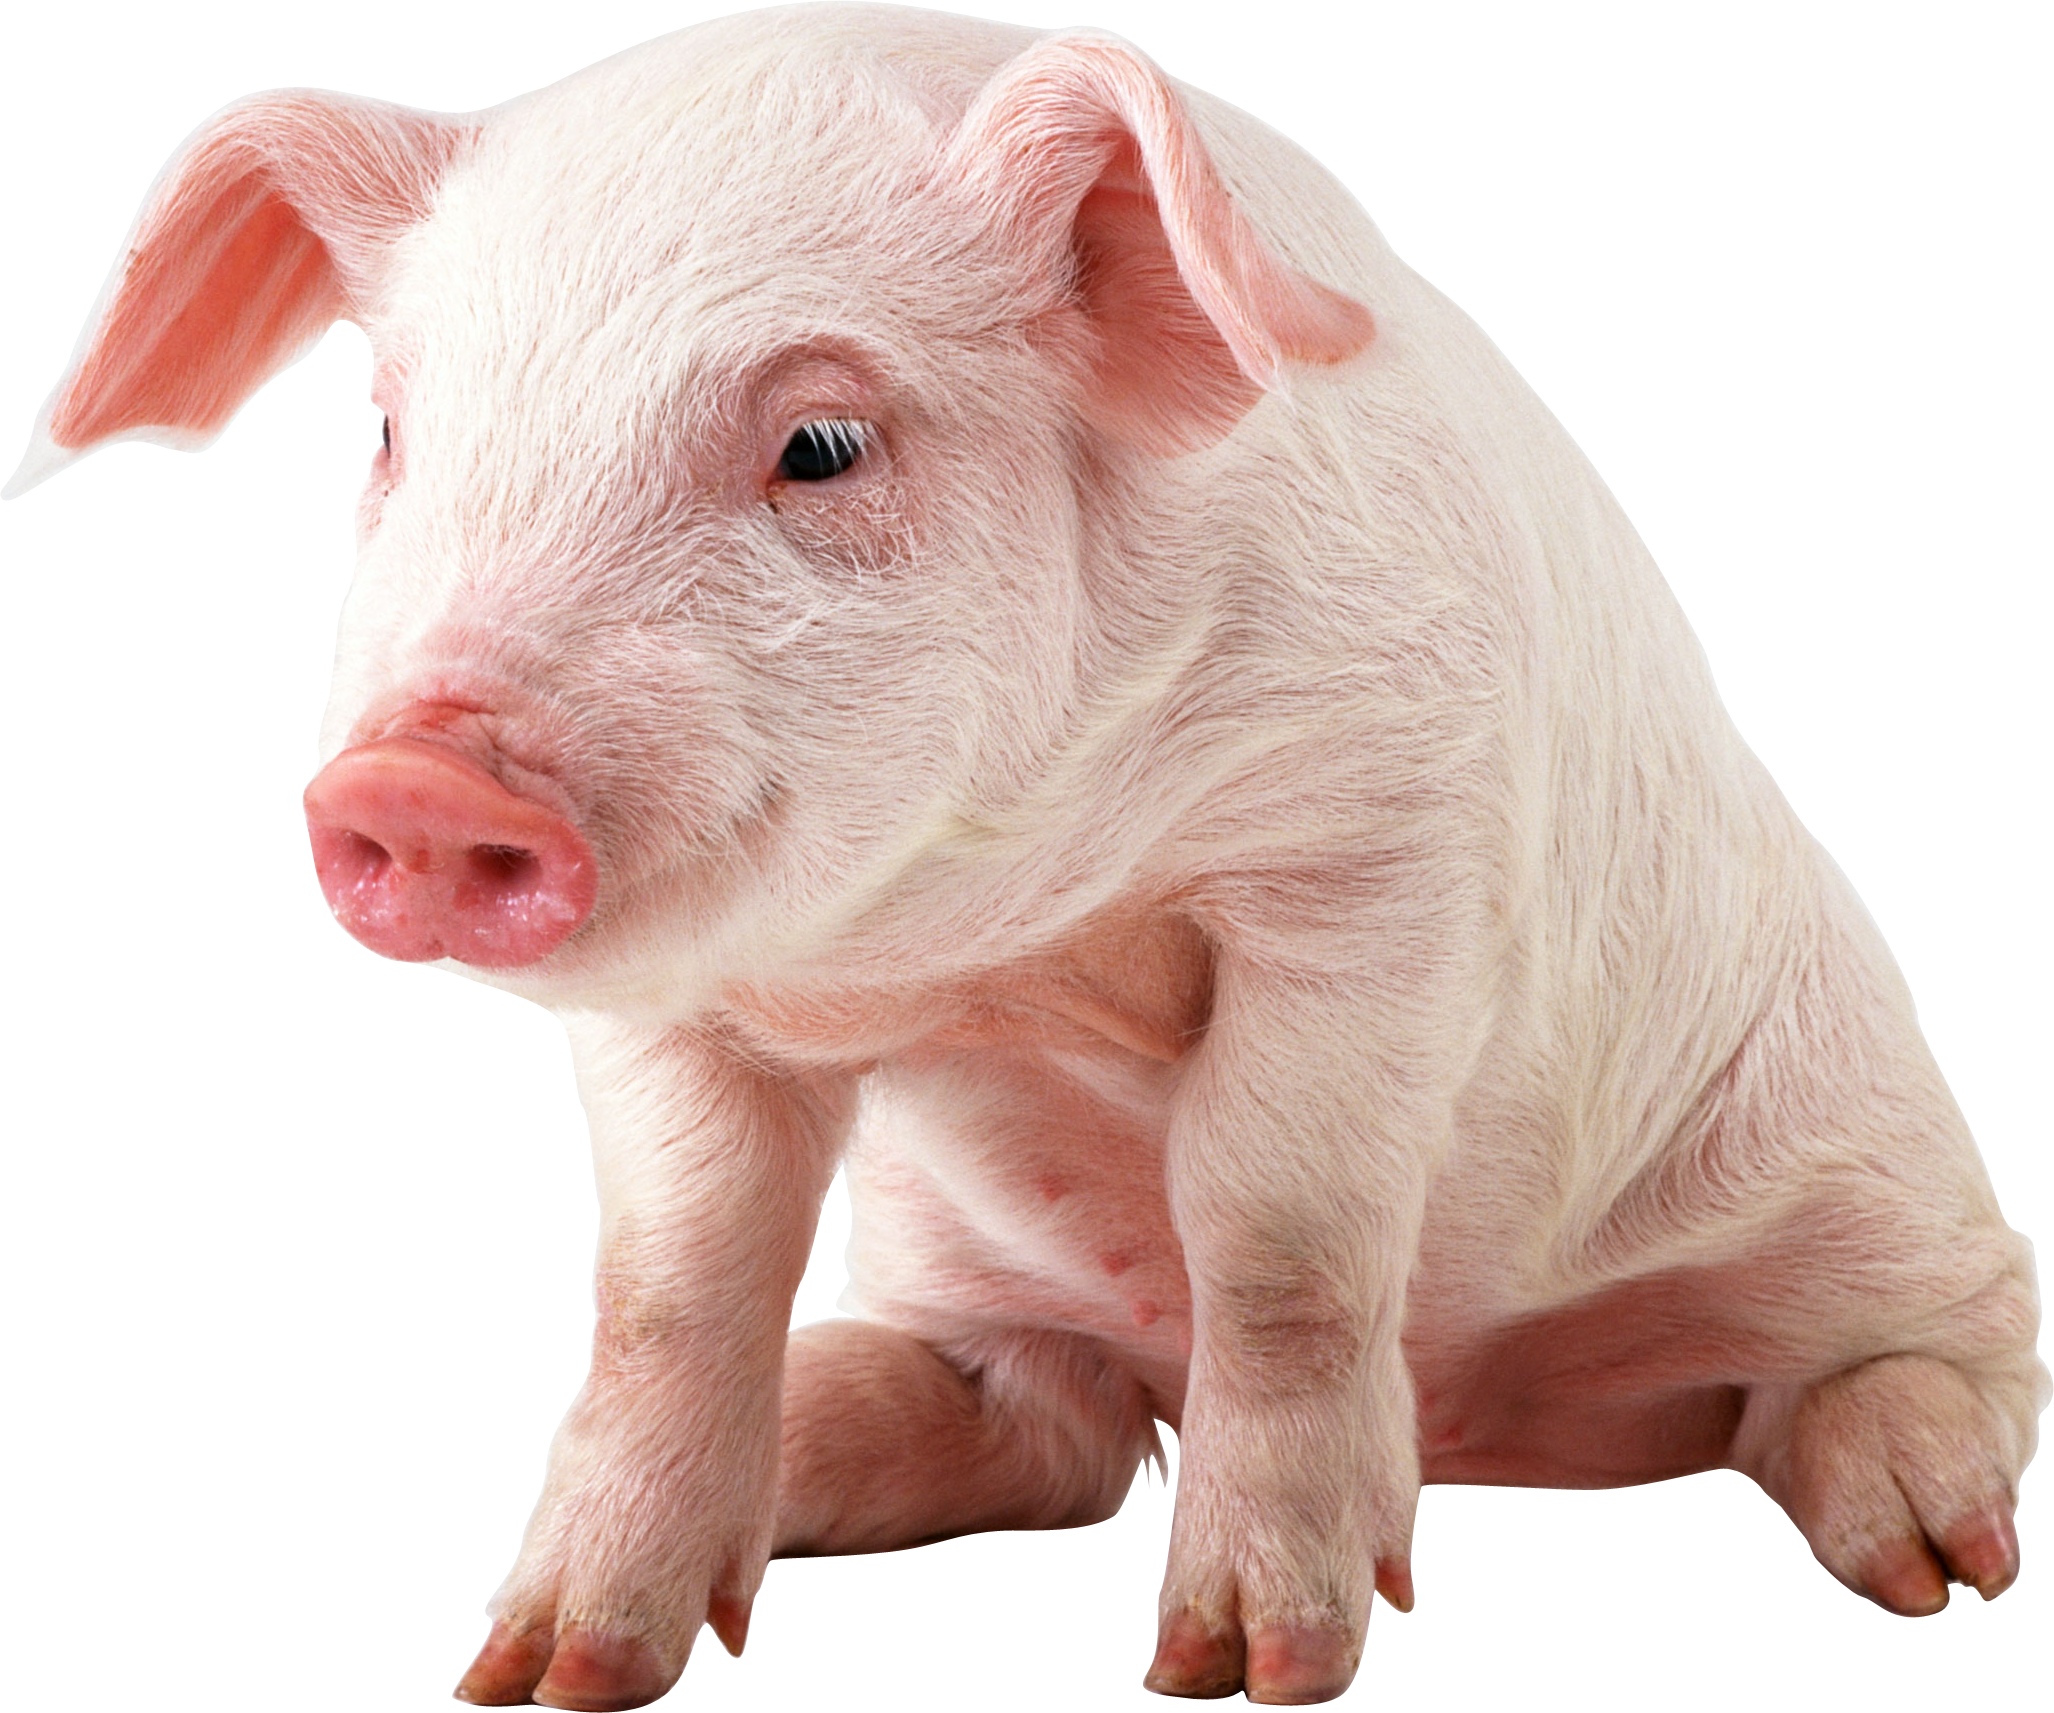 pig the pig cute animal little pigs baby pigs photo cute guinea pig 2054x1713